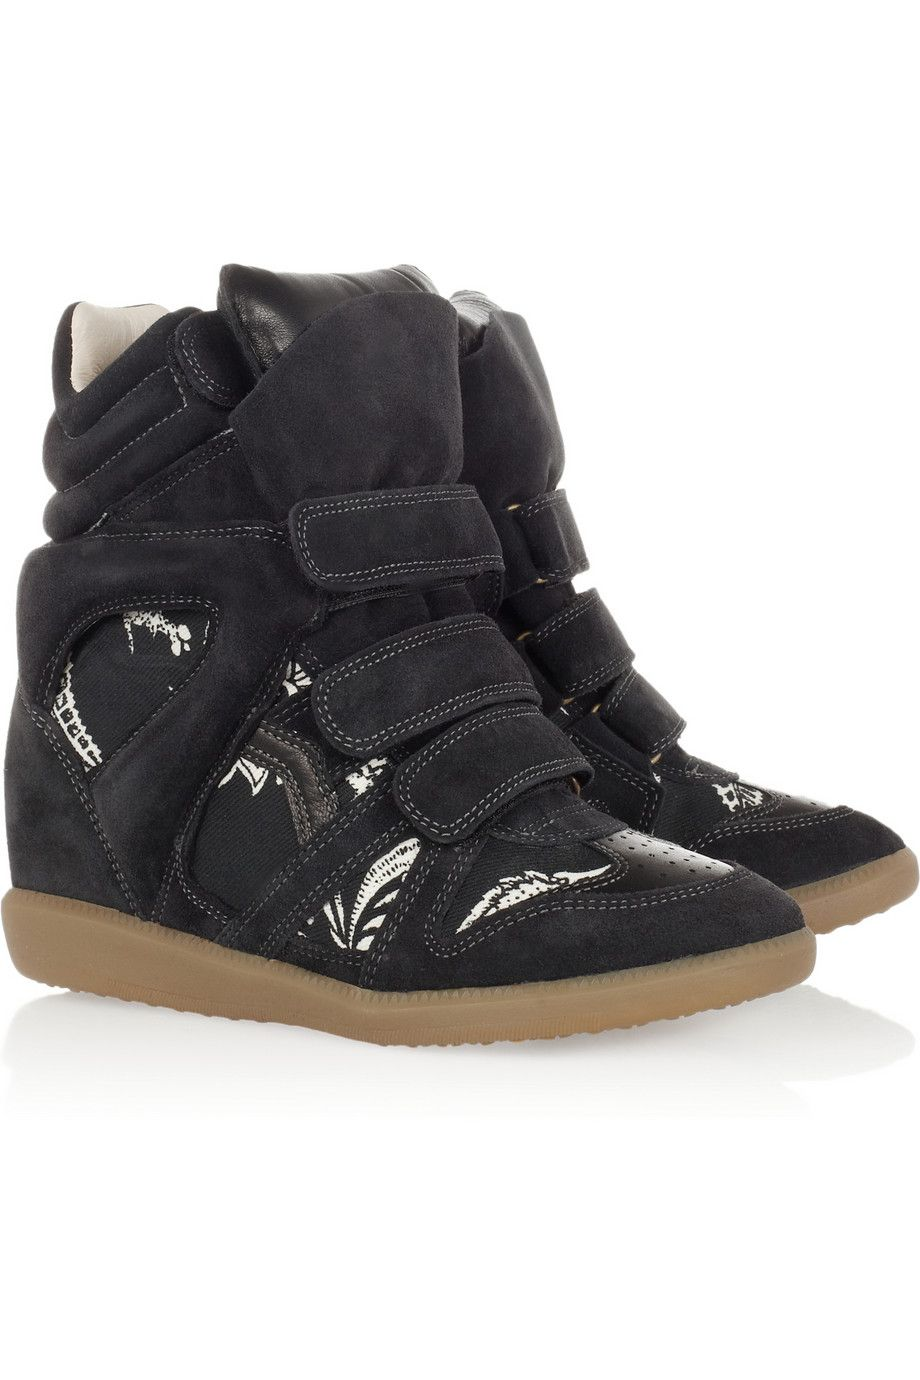 acbd3f599c Isabel Marant | The Bekett printed canvas and suede concealed wedge sneakers  | NET-A-PORTER.COM